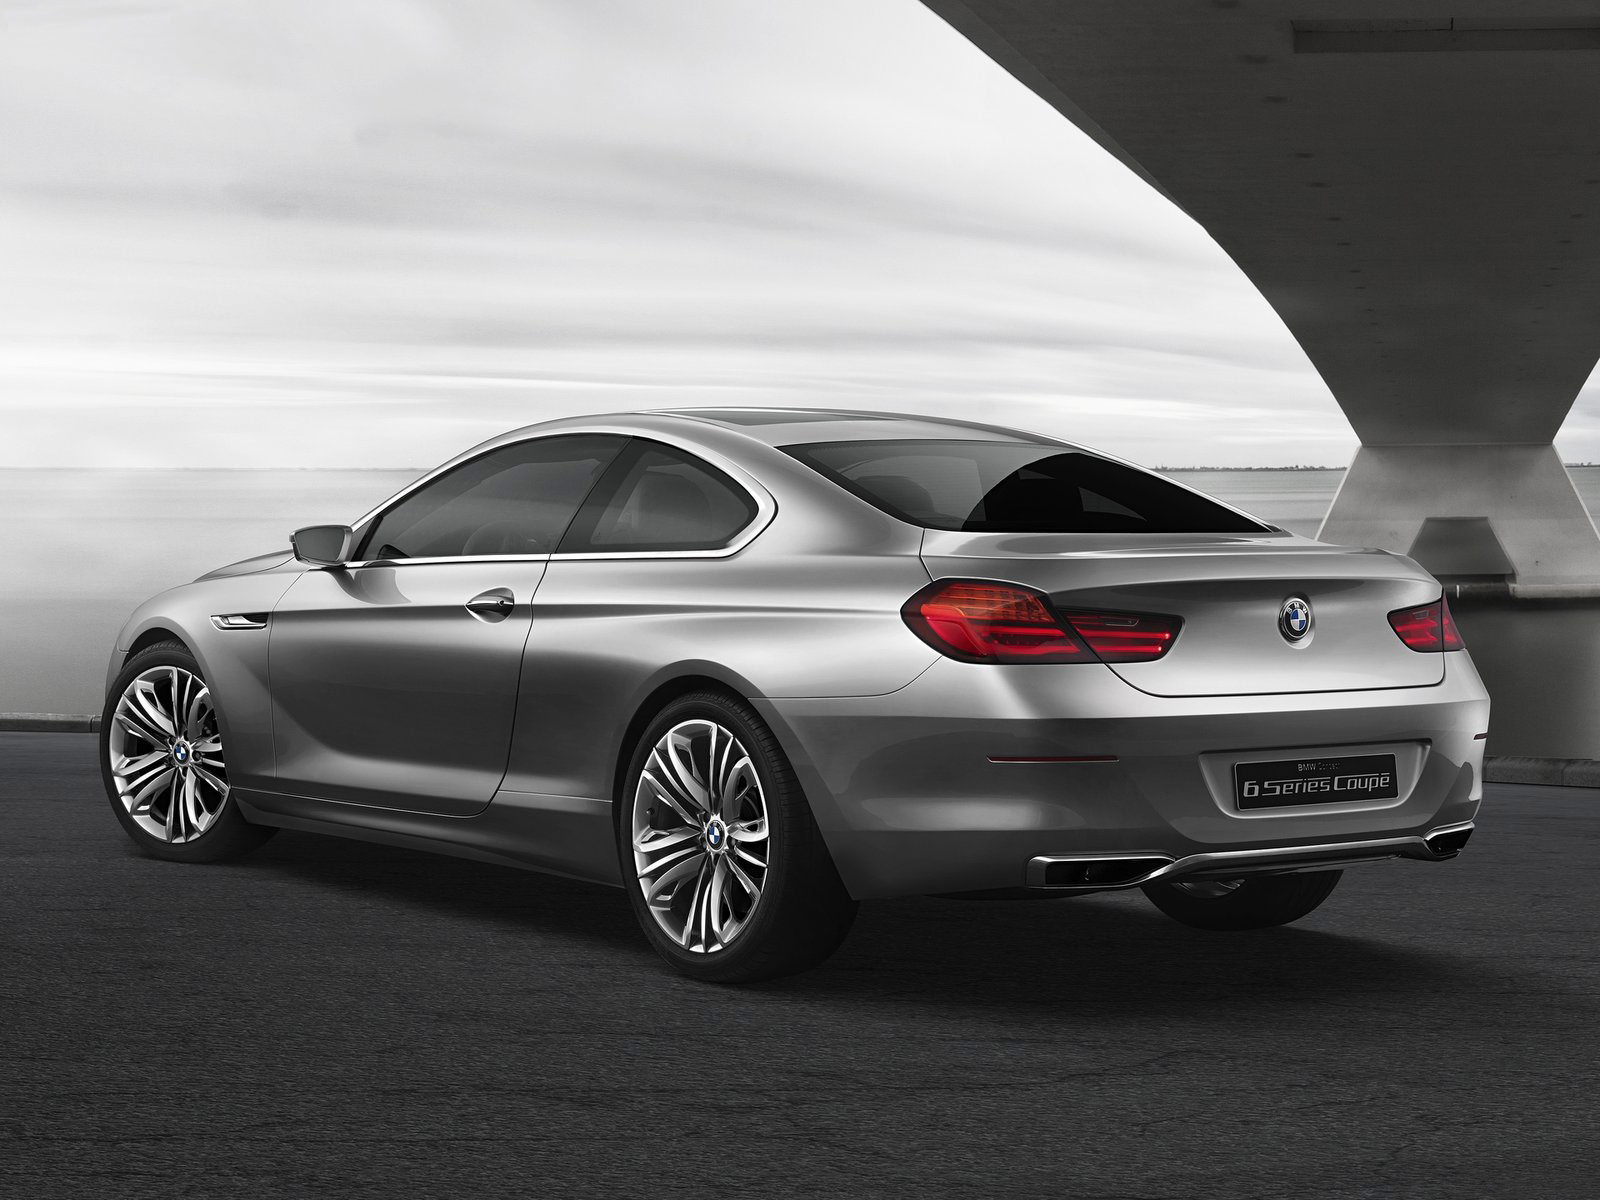 Car accident lawyers info. 2010 BMW 6-Series Coupe Concept